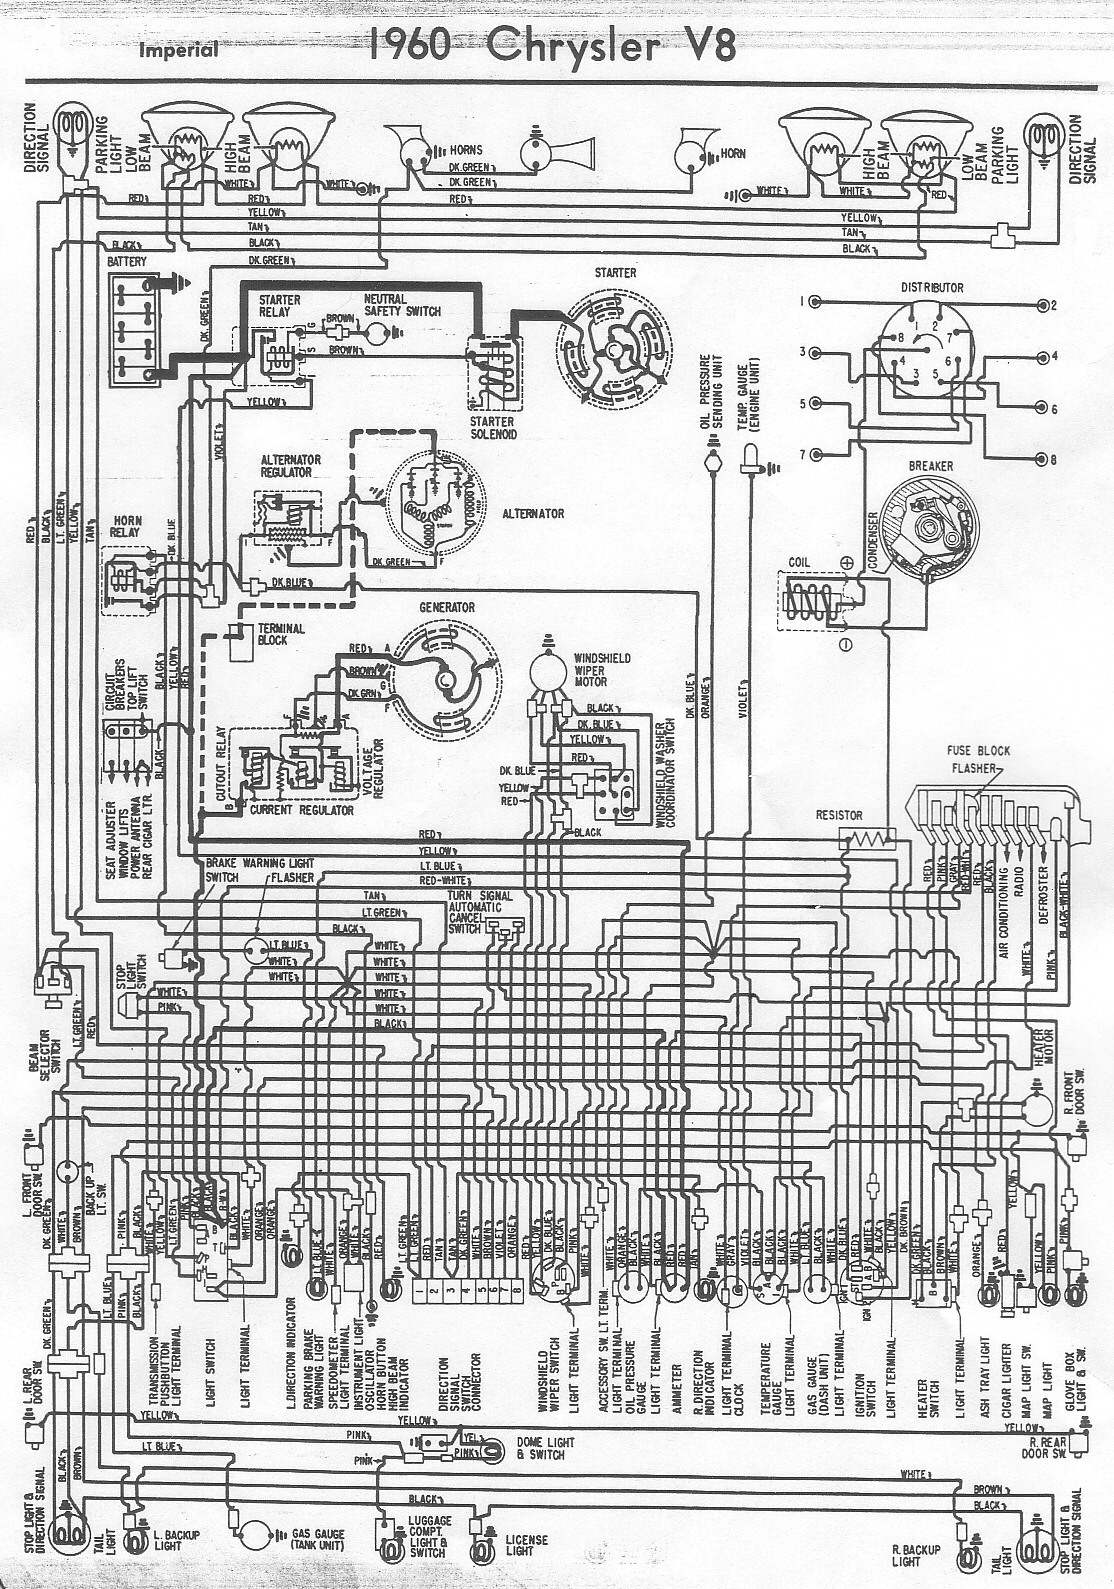 Free Auto Wiring Diagram: May 2011